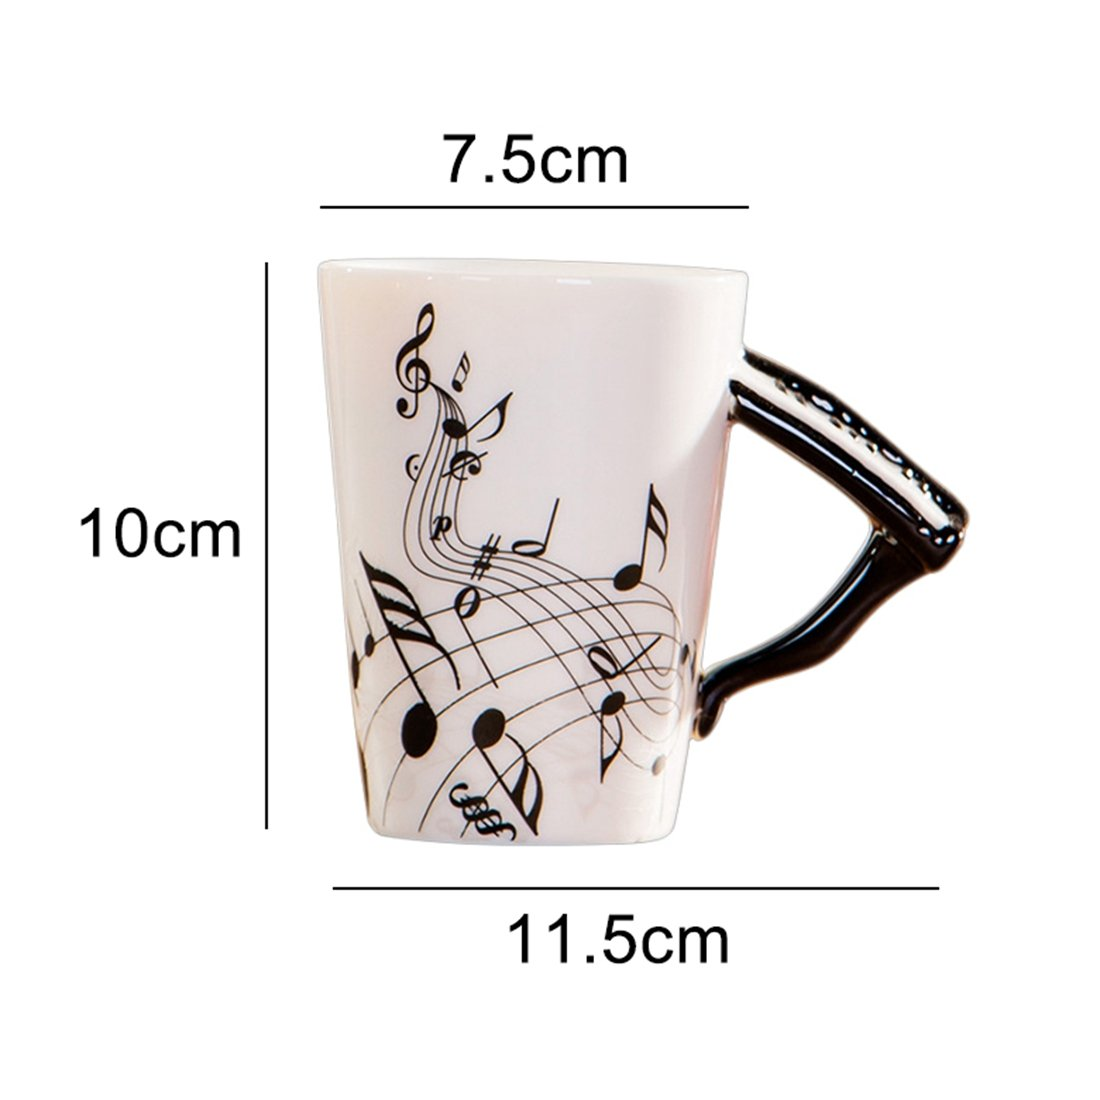 SODIAL Creative novelty piano handle ceramic cup free spectrum coffee mi  tea cup personality mug unique musical instrument gift cup